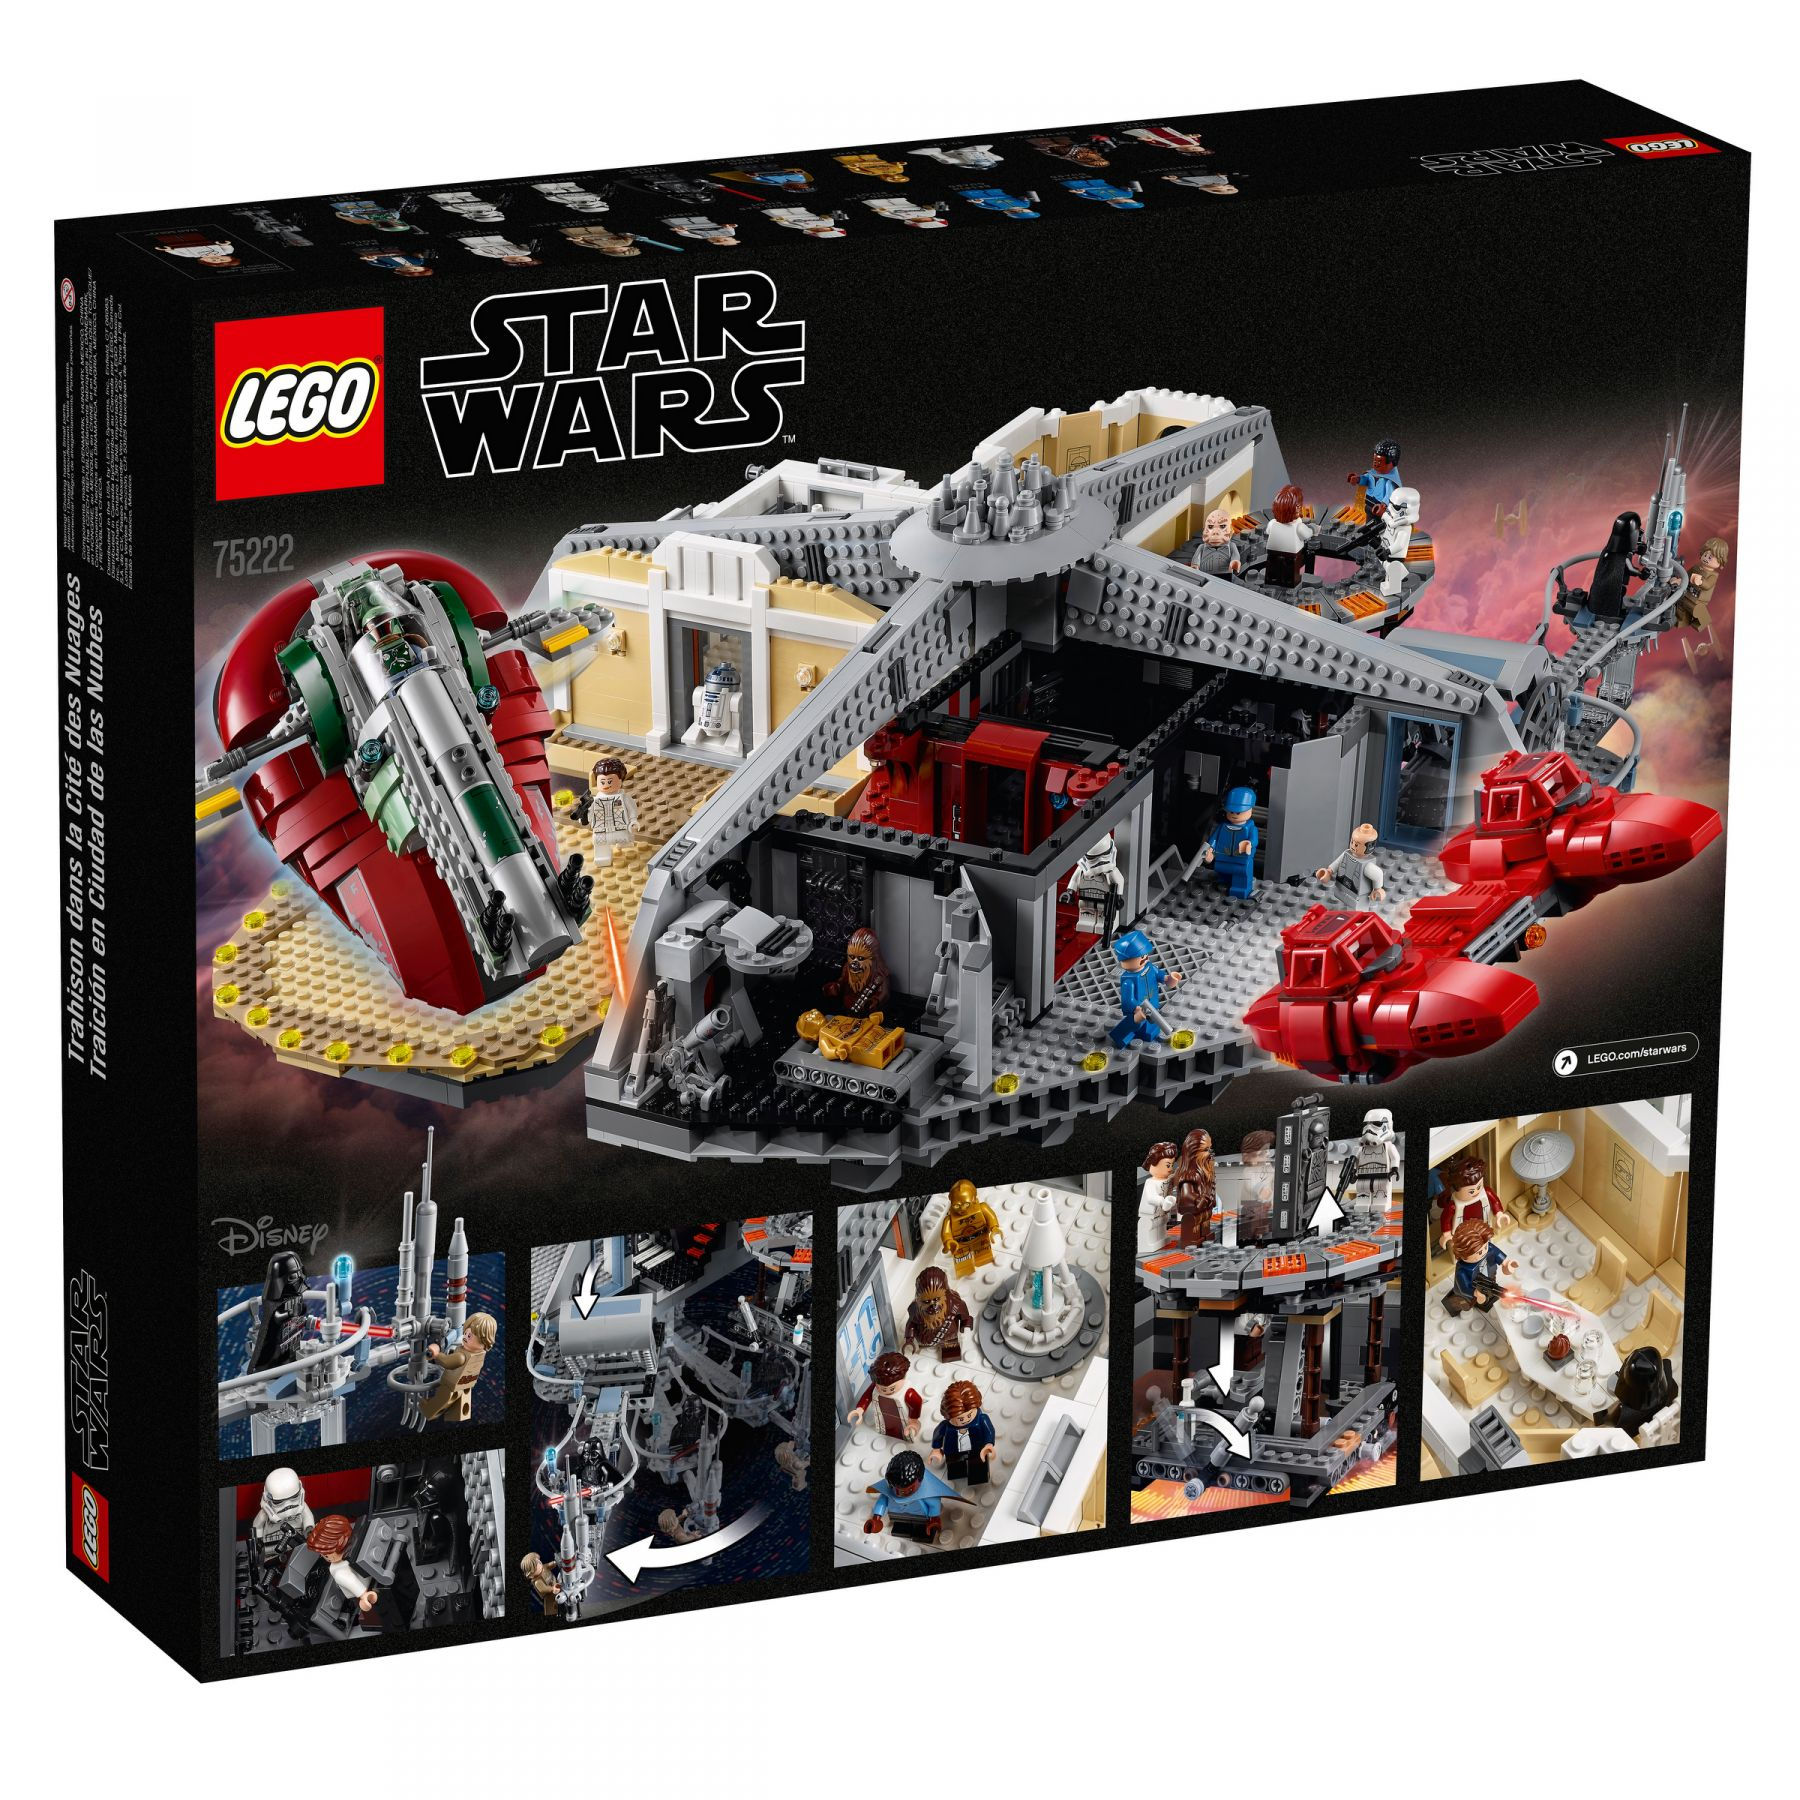 LEGO Star Wars 75222 Verrat in Cloud City™ LEGO_75222_alt11.jpg